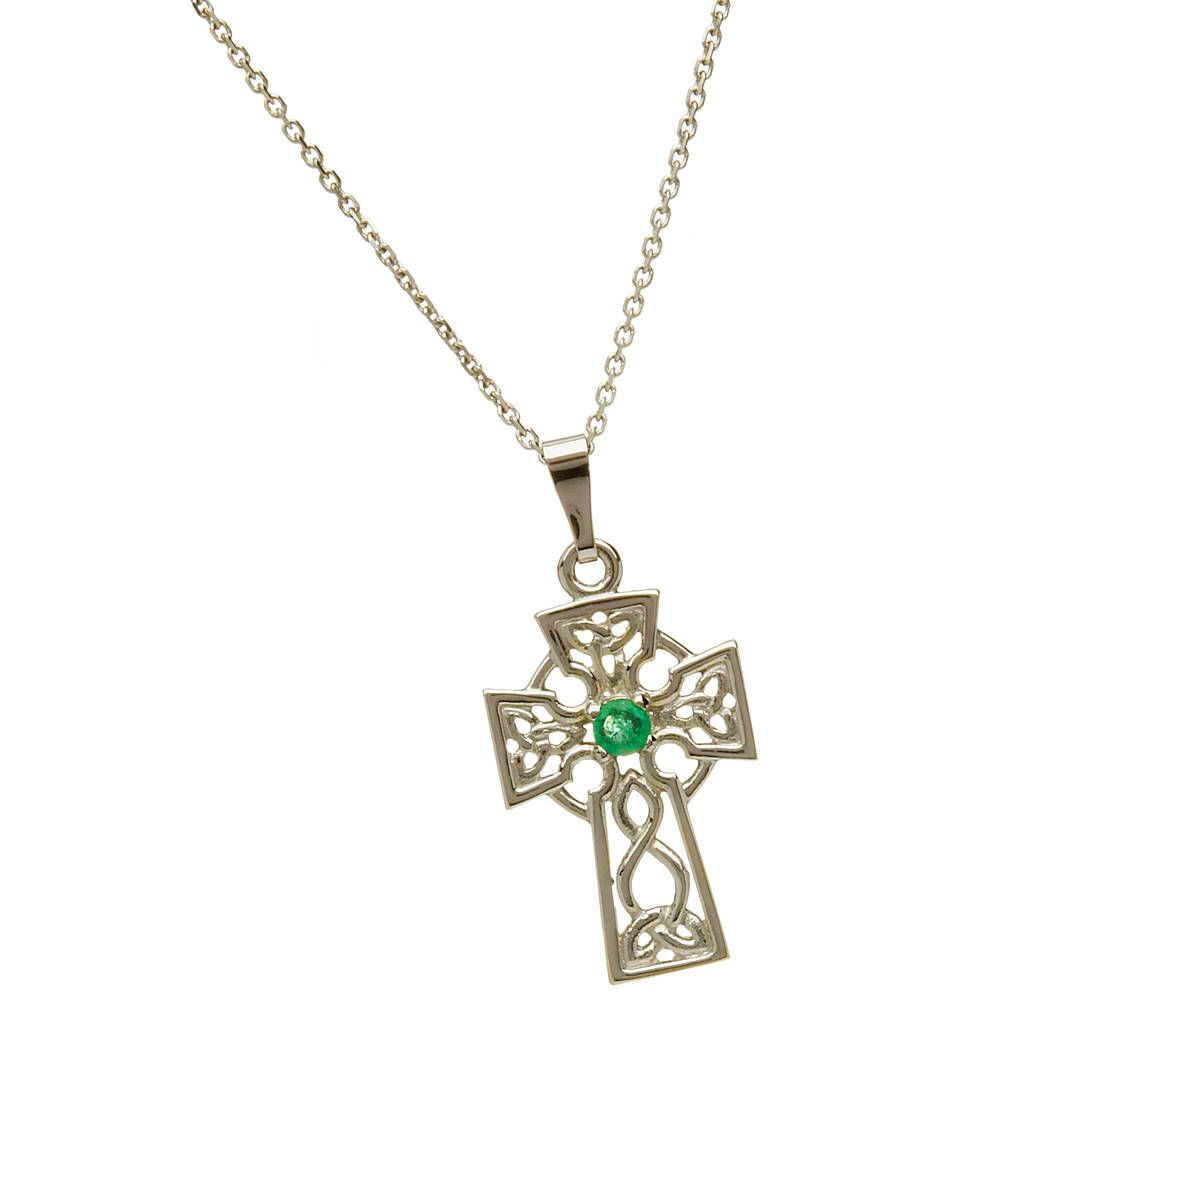 \n	10 carat white gold filigree Celtic cross pendant with emerald.This has a beautiful emerald mounted in the heart of the cross.\n	If you prefer this pendant in yellow gold or in rose gold,please let us know of your preference in our comment box when you go to checkout.